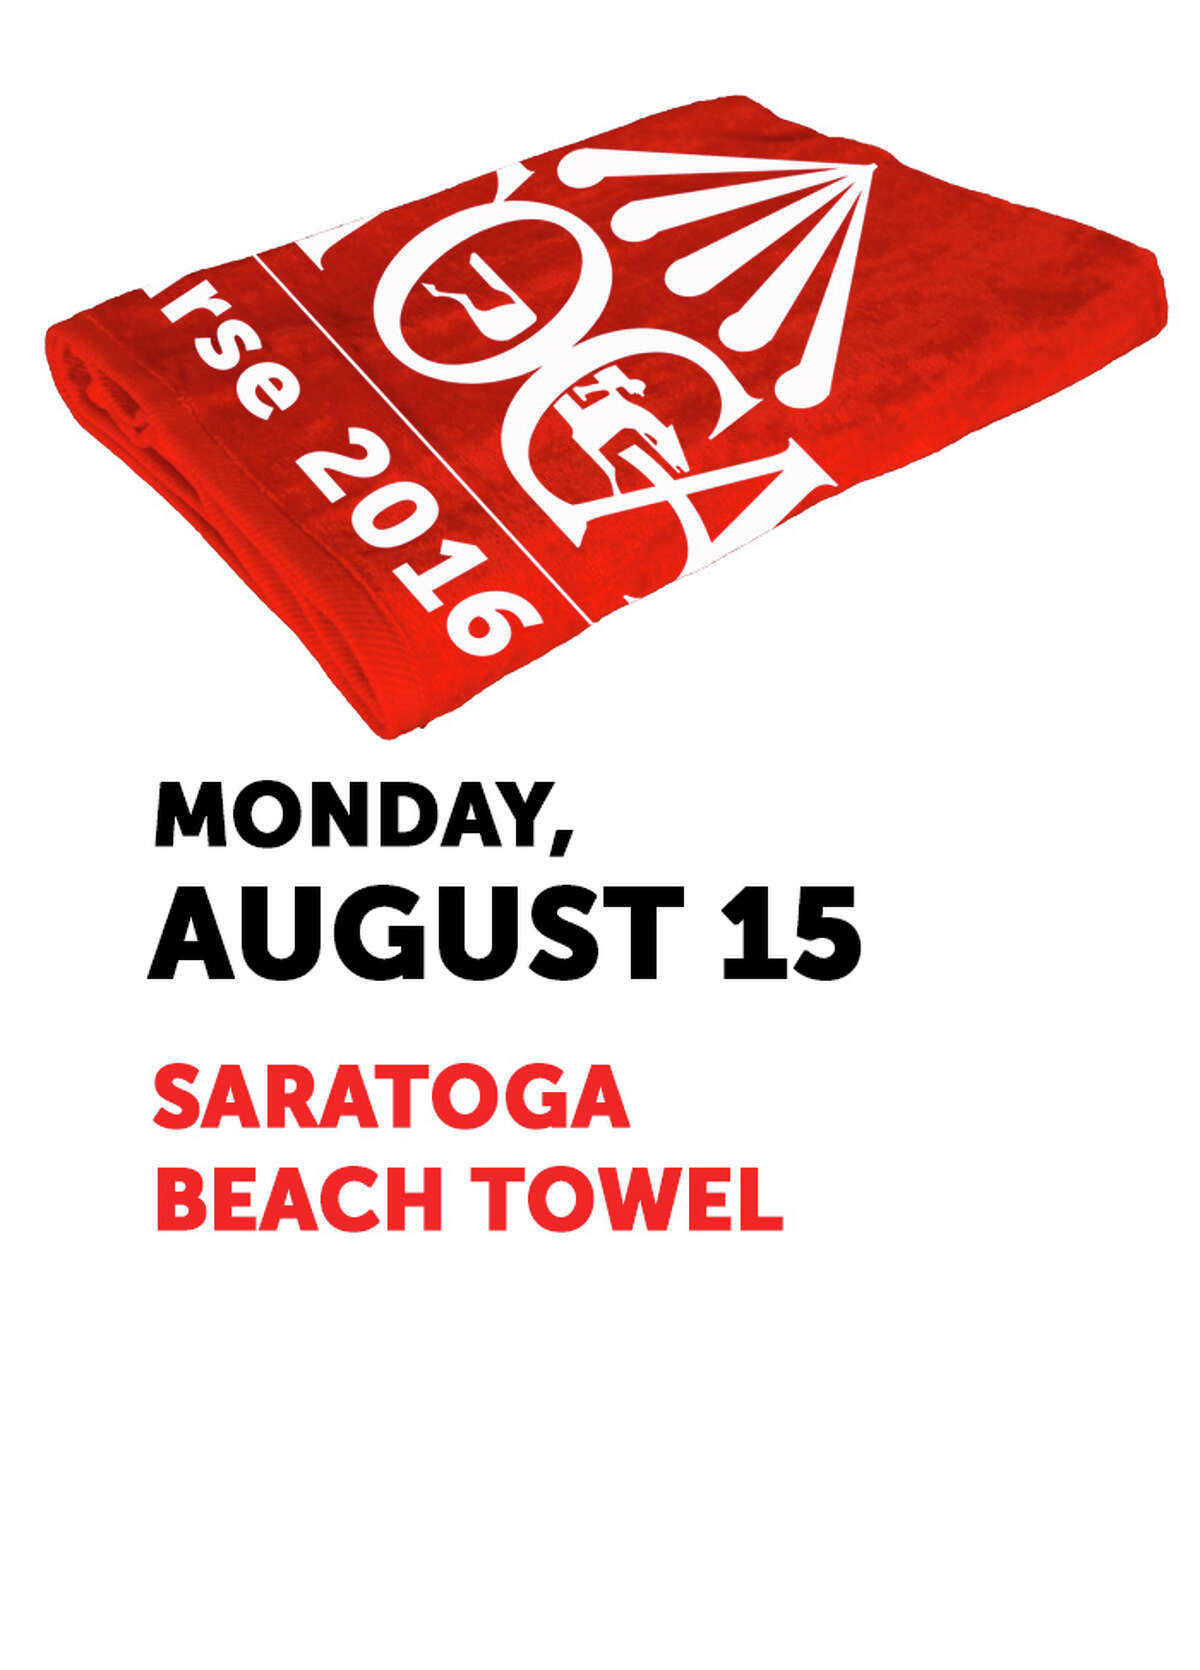 The Saratoga beach towel is the free giveaway offered on Monday, Aug. 15, 2016.